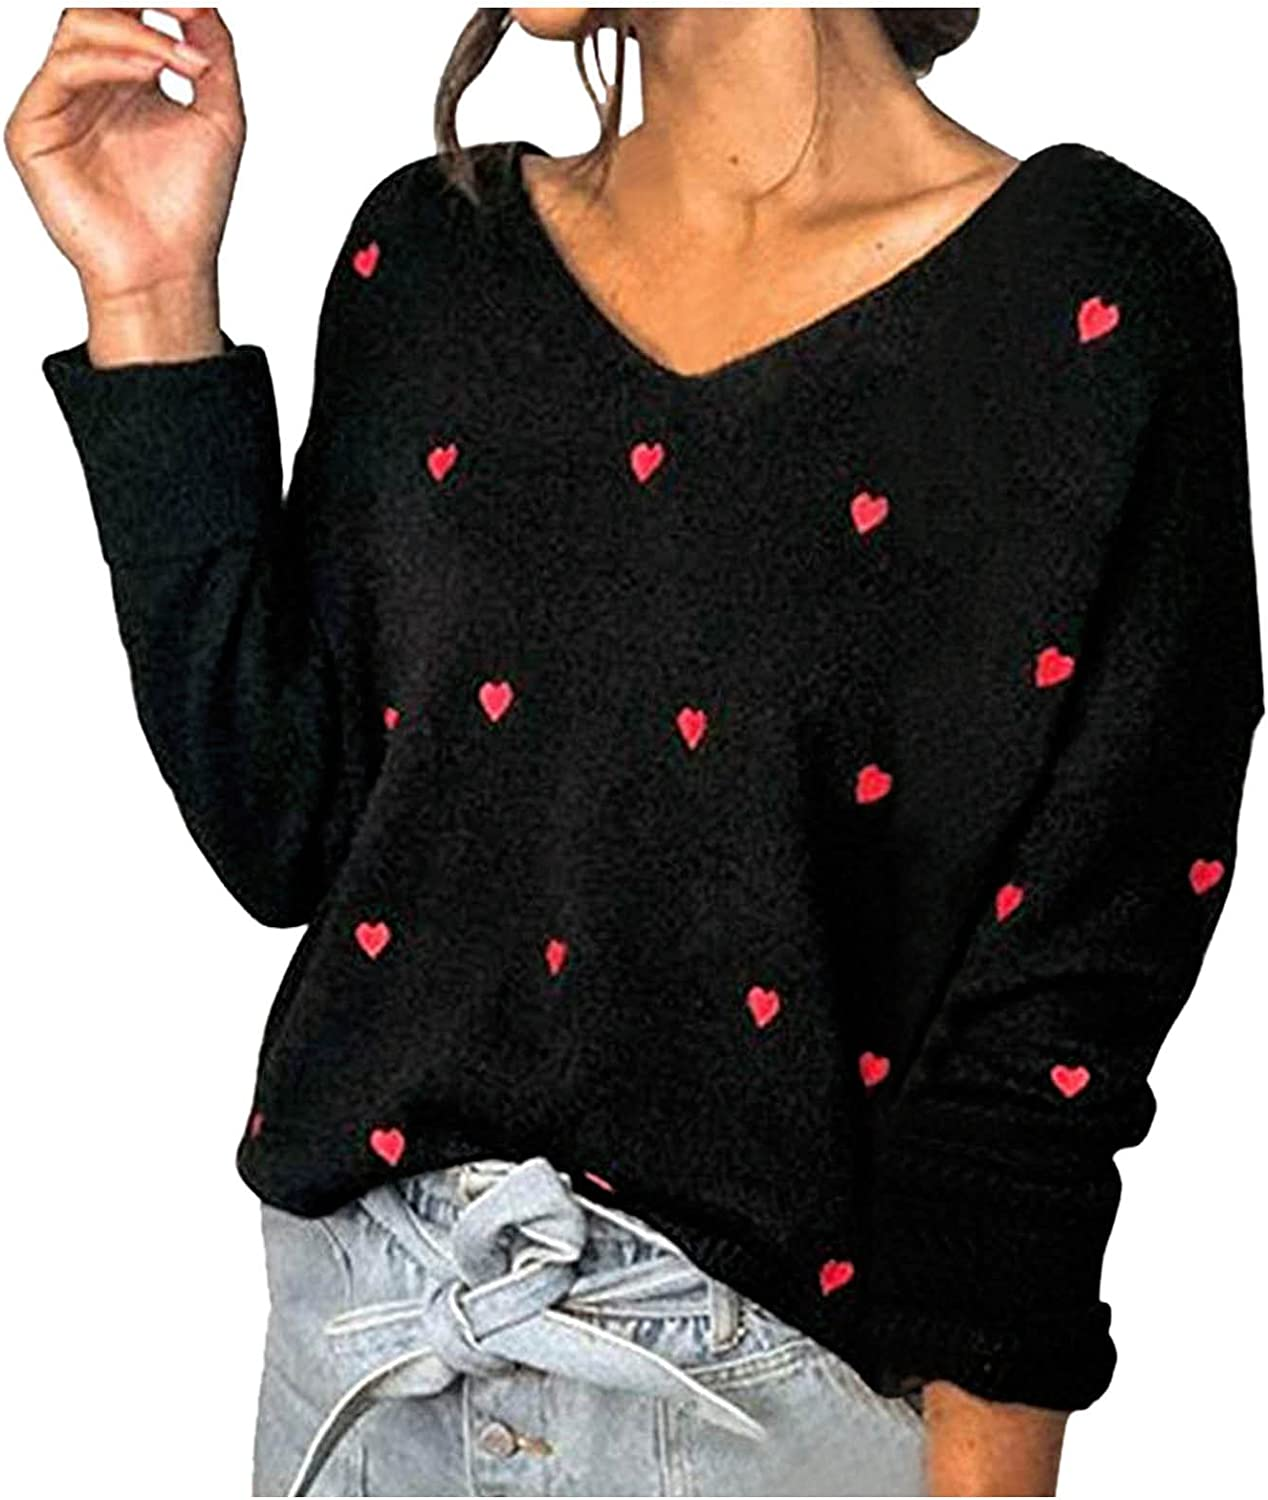 JPLZi Women's Fashion Long Sleeve Cute Heart Knitted Sweater V-Neck Loose Pullover Jumper Tops Casual Baggy Blouse Shirt